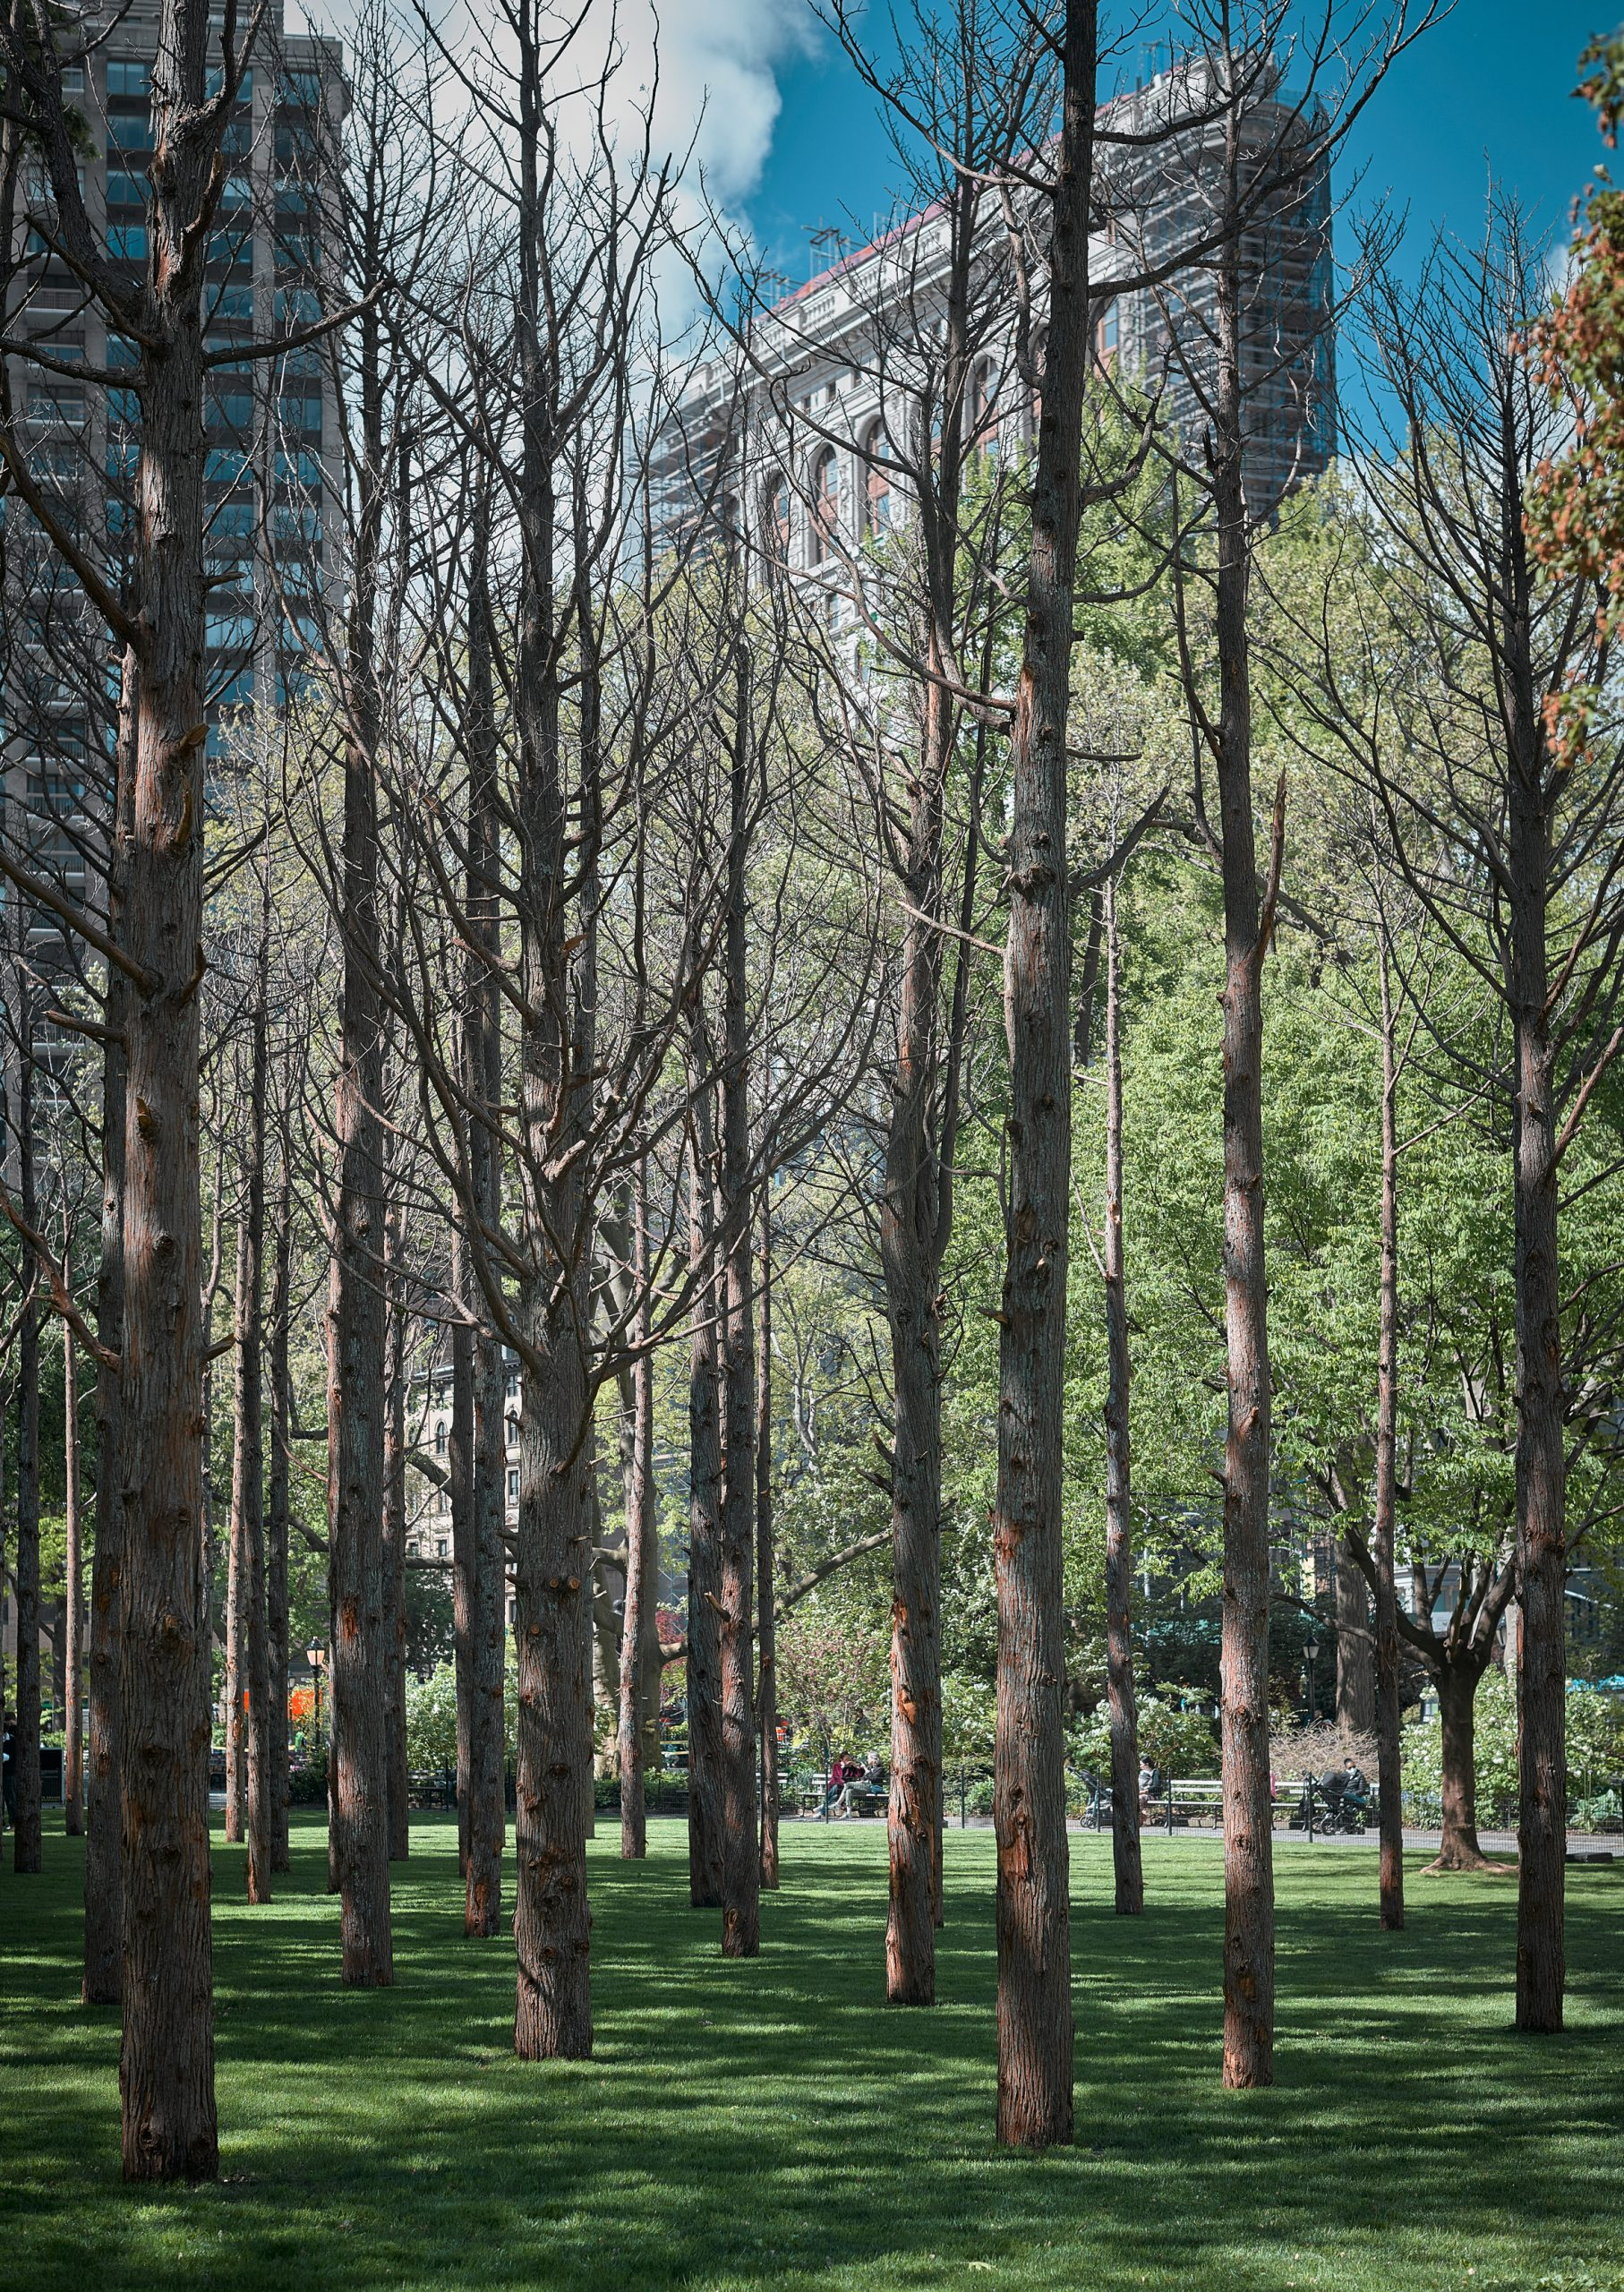 Maya Lin worked with the Madison Square Park Conservancy on the project